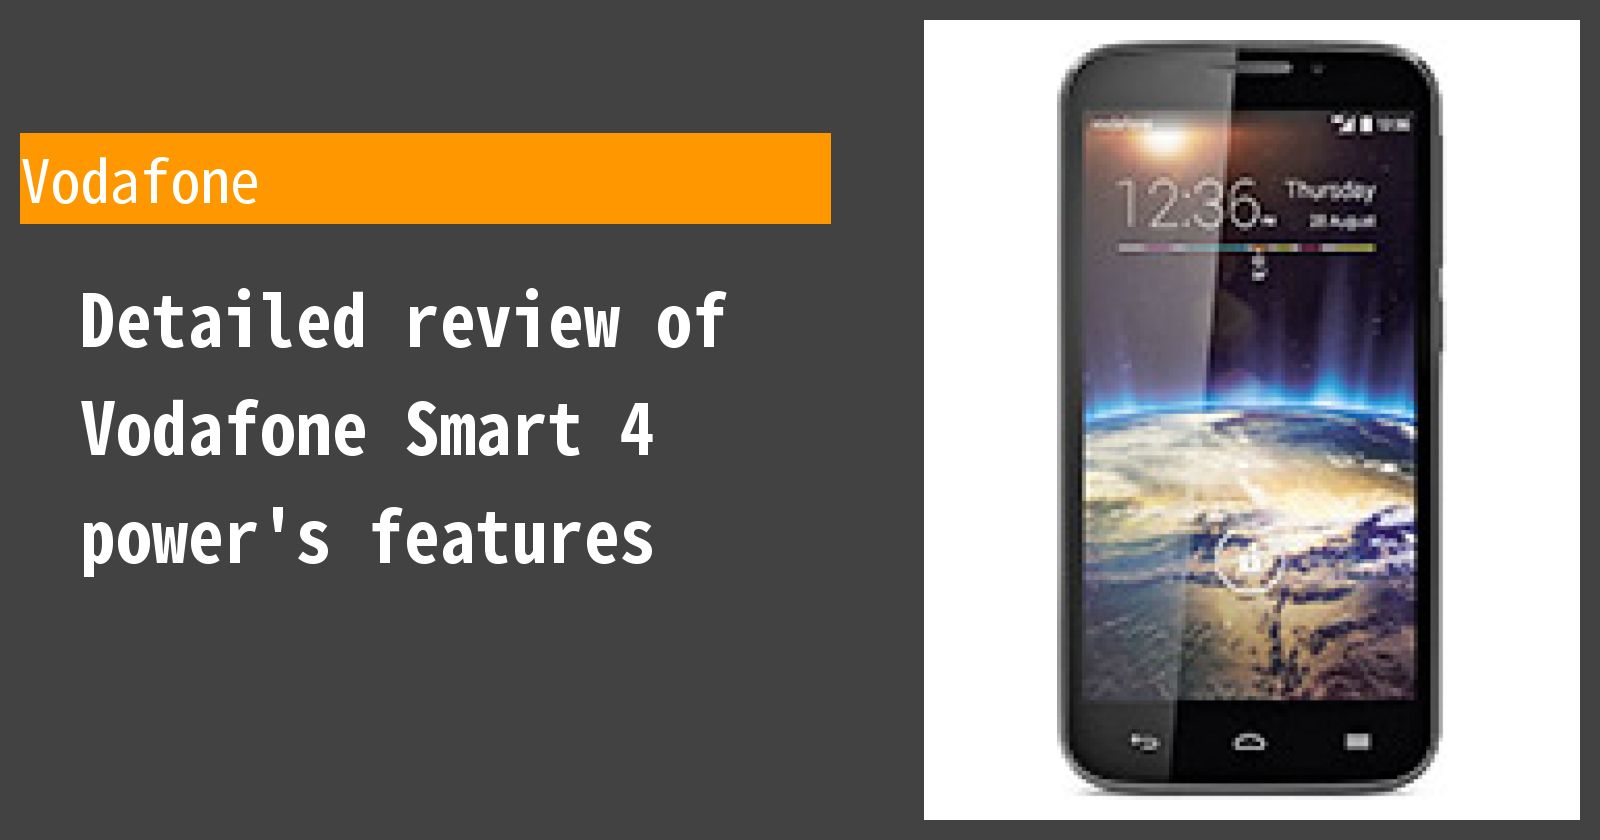 Detailed review of Vodafone Smart 4 power's features